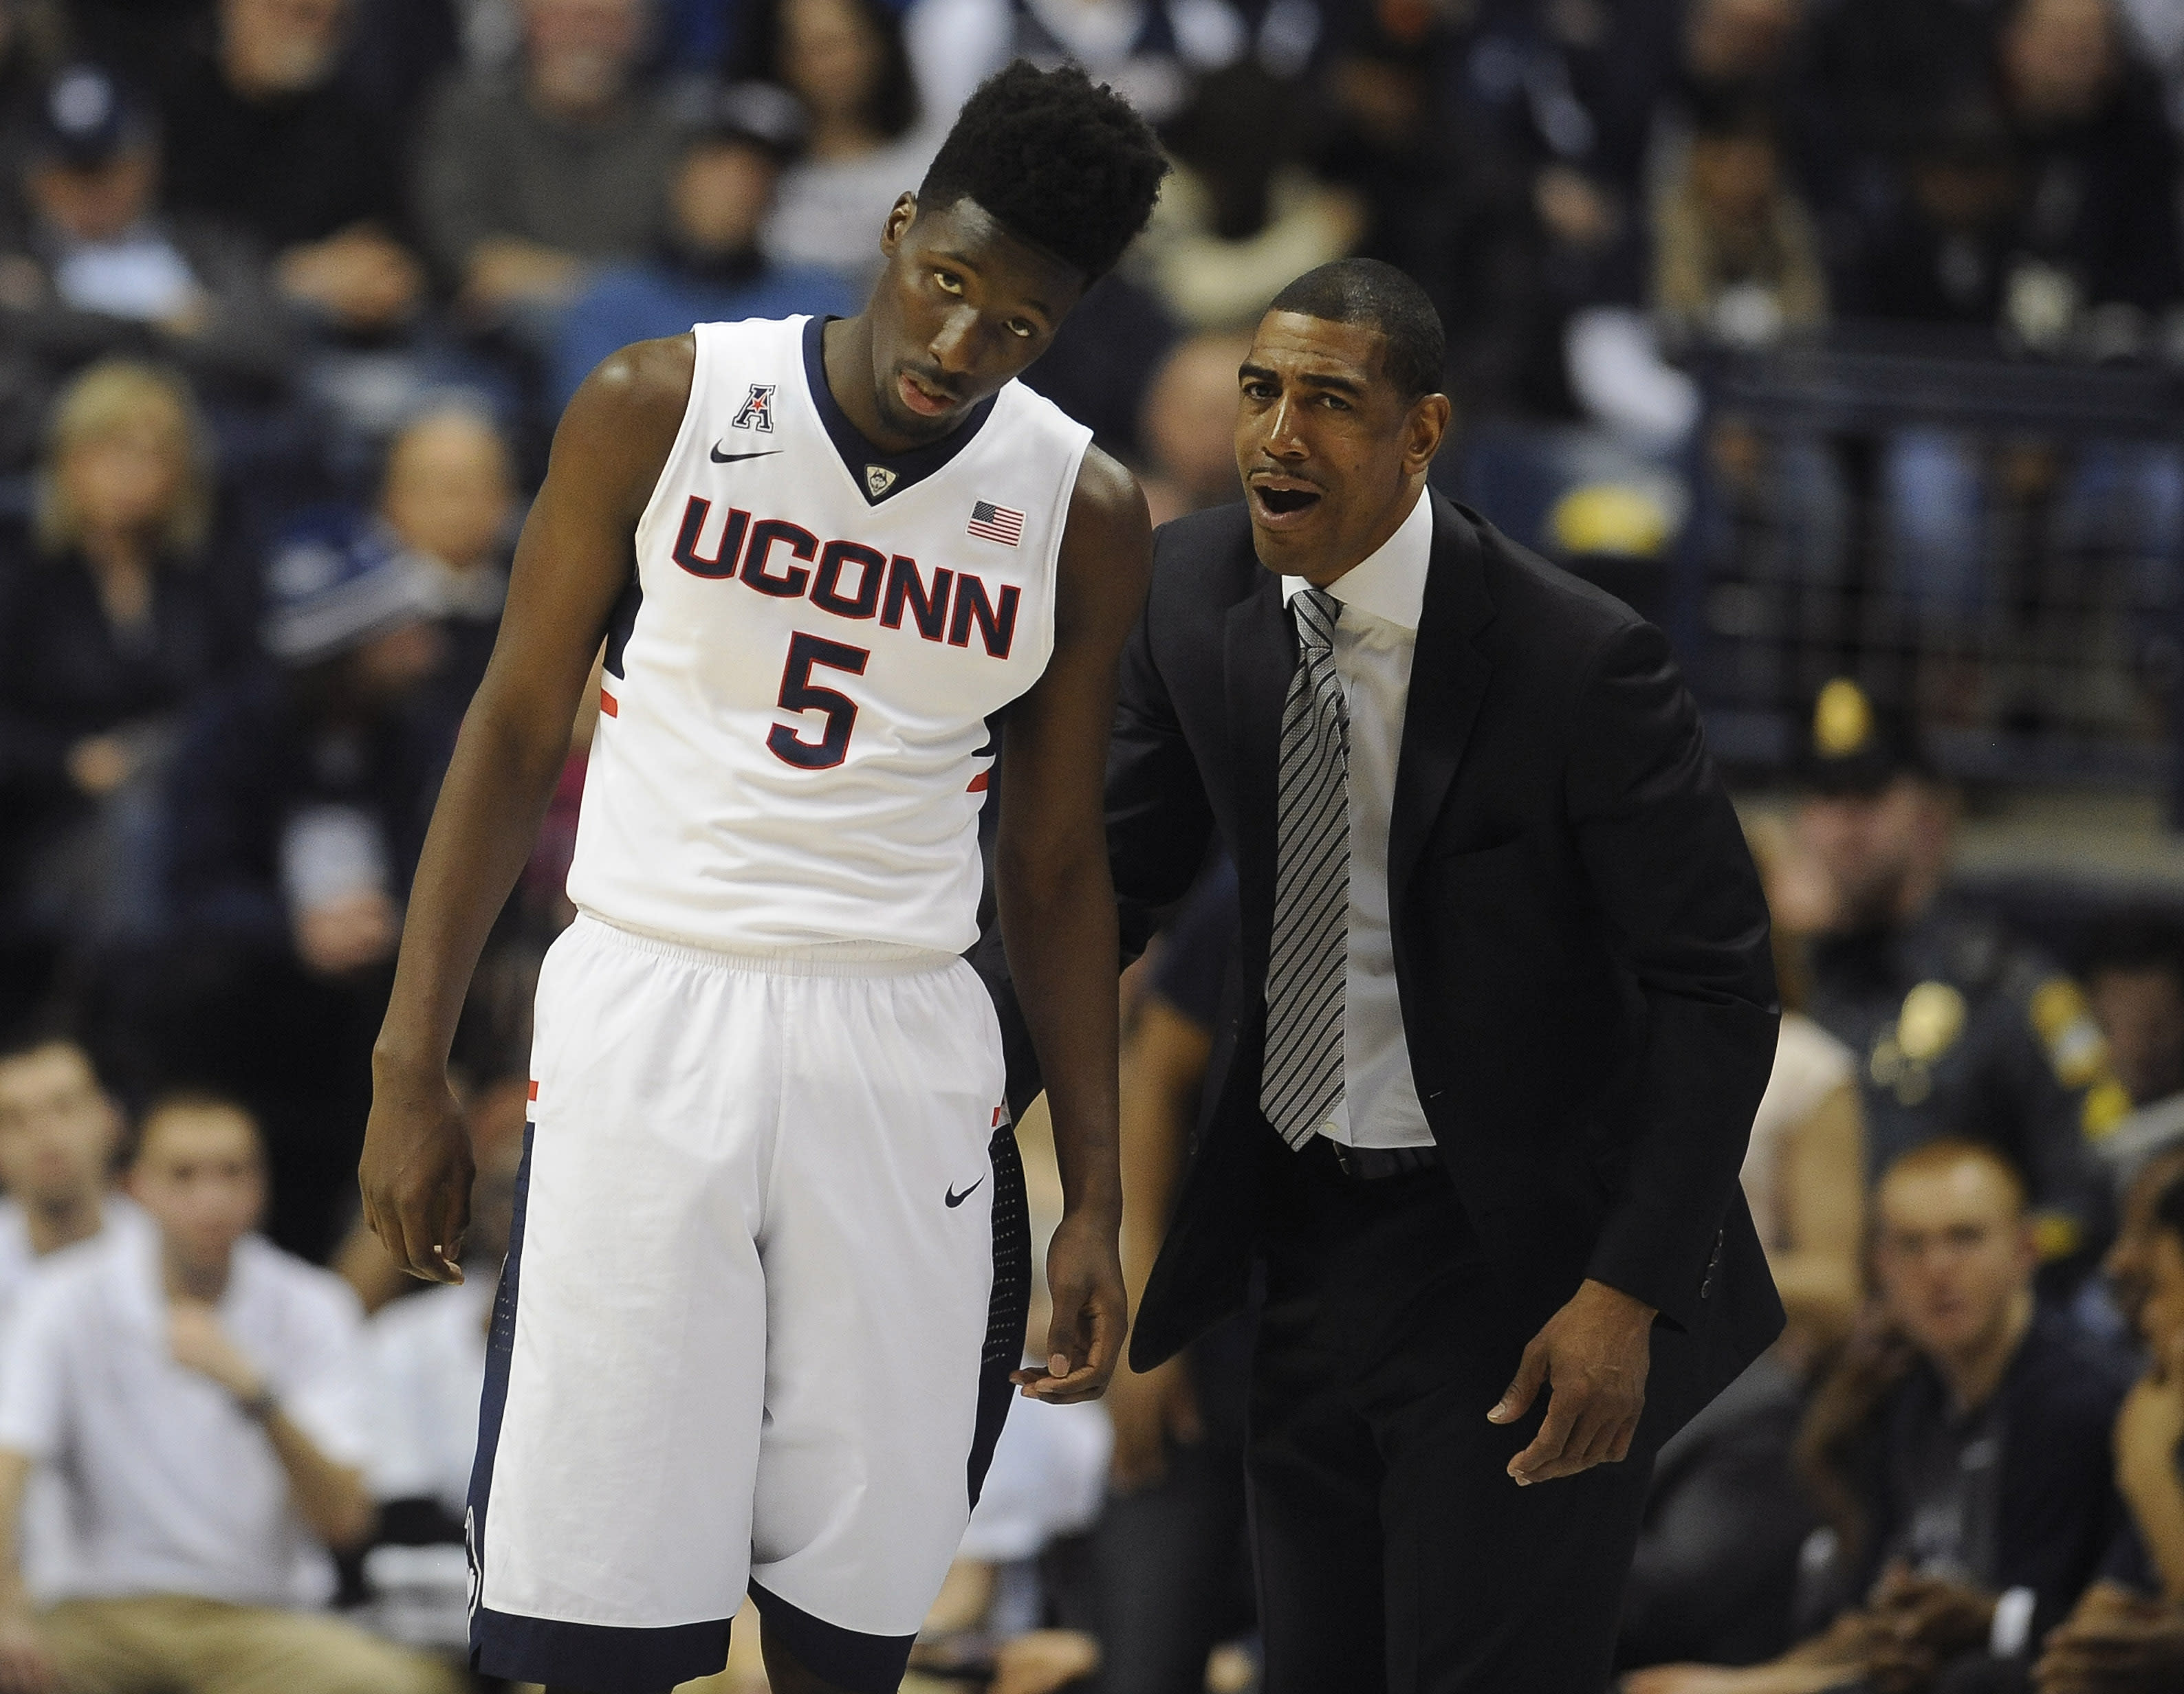 UConn coaches prohibited from attending the Final Four